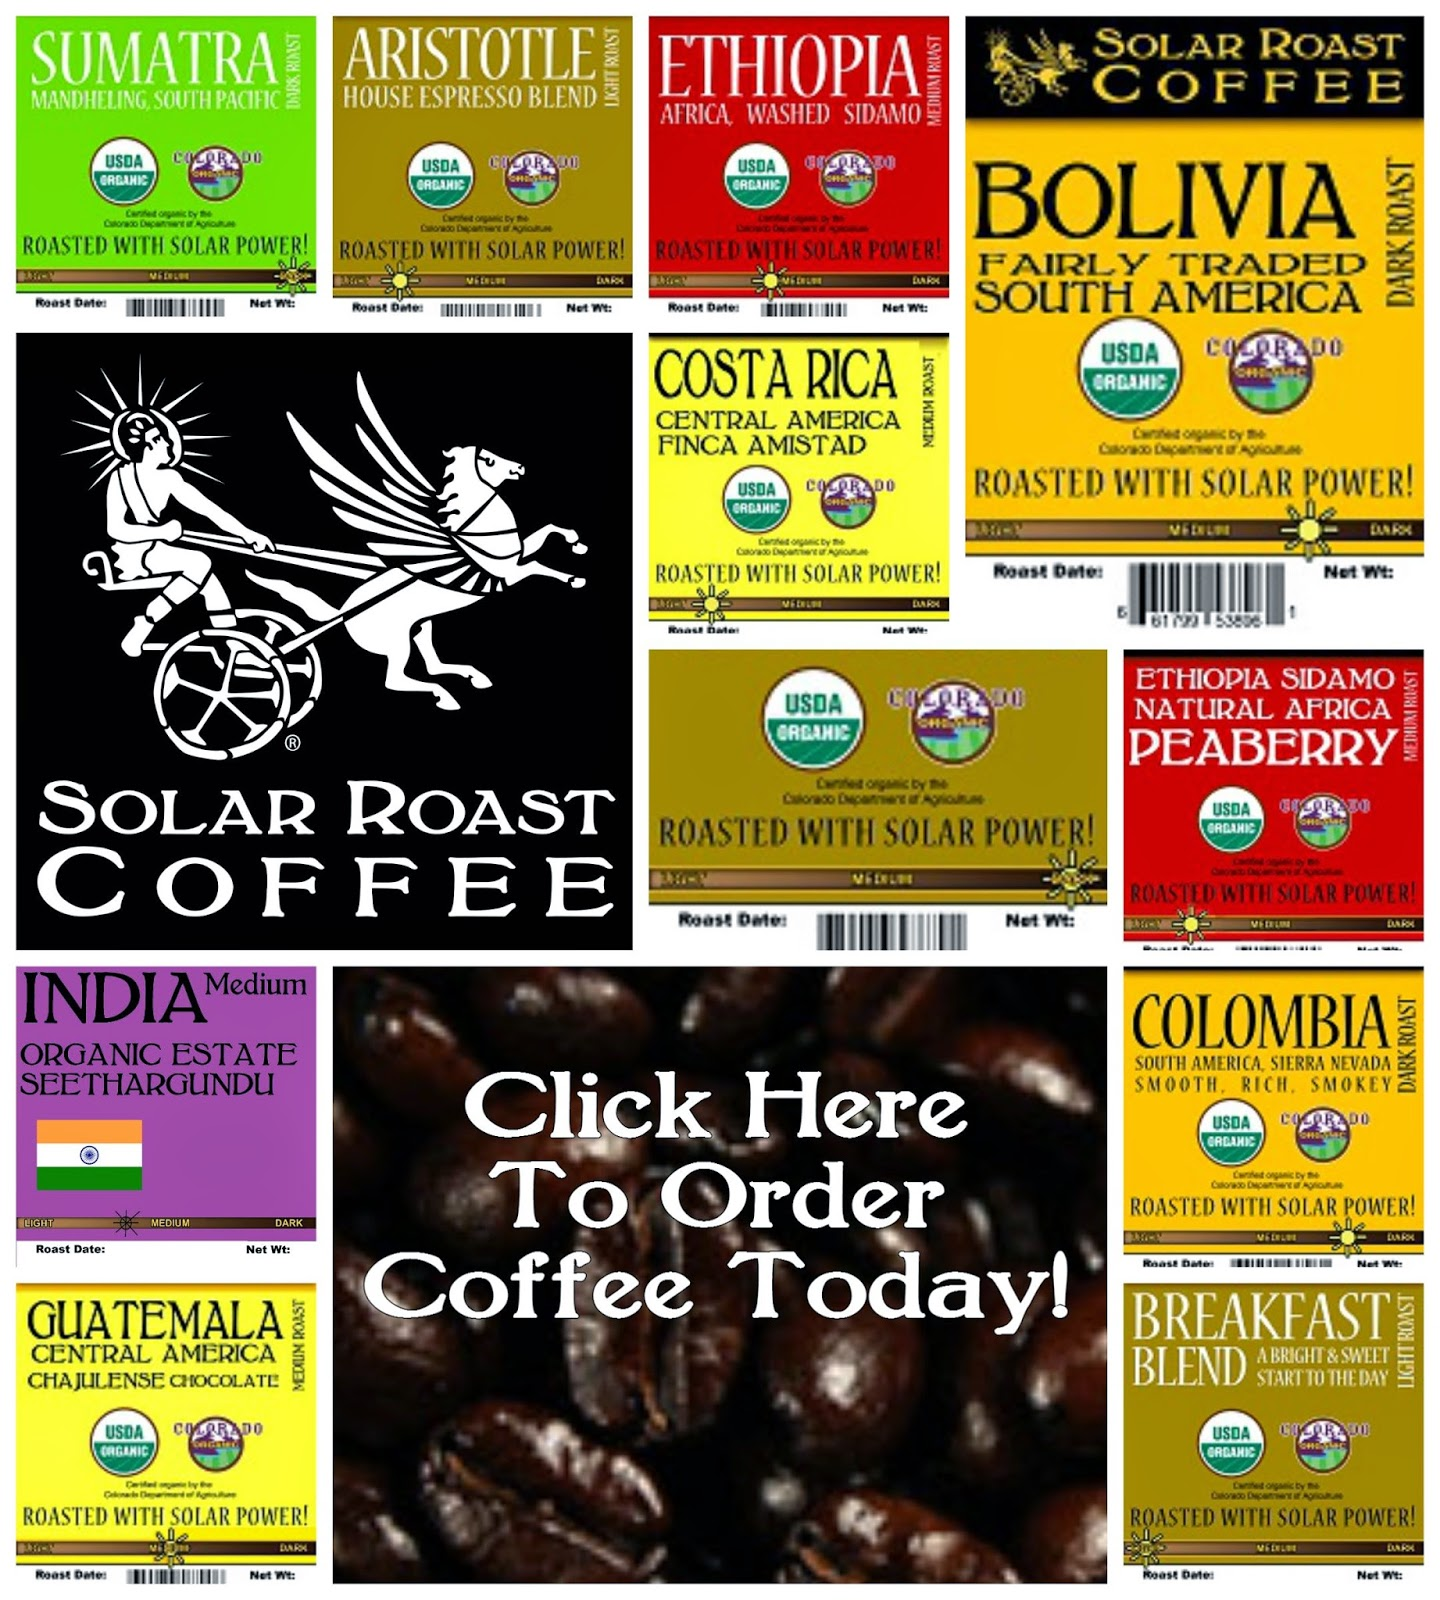 Solar Roast Website